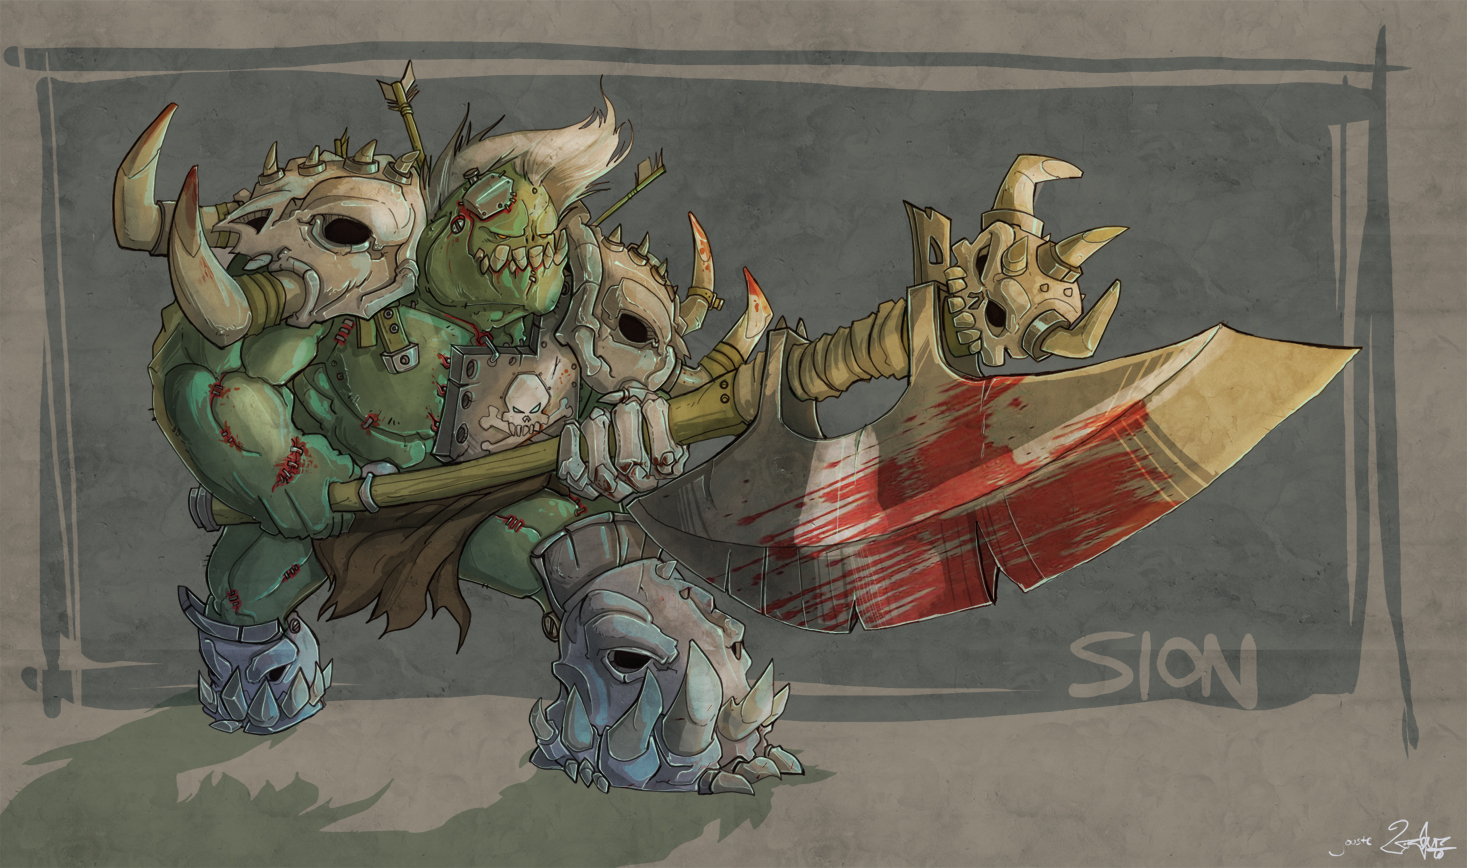 sion the slaughterer!